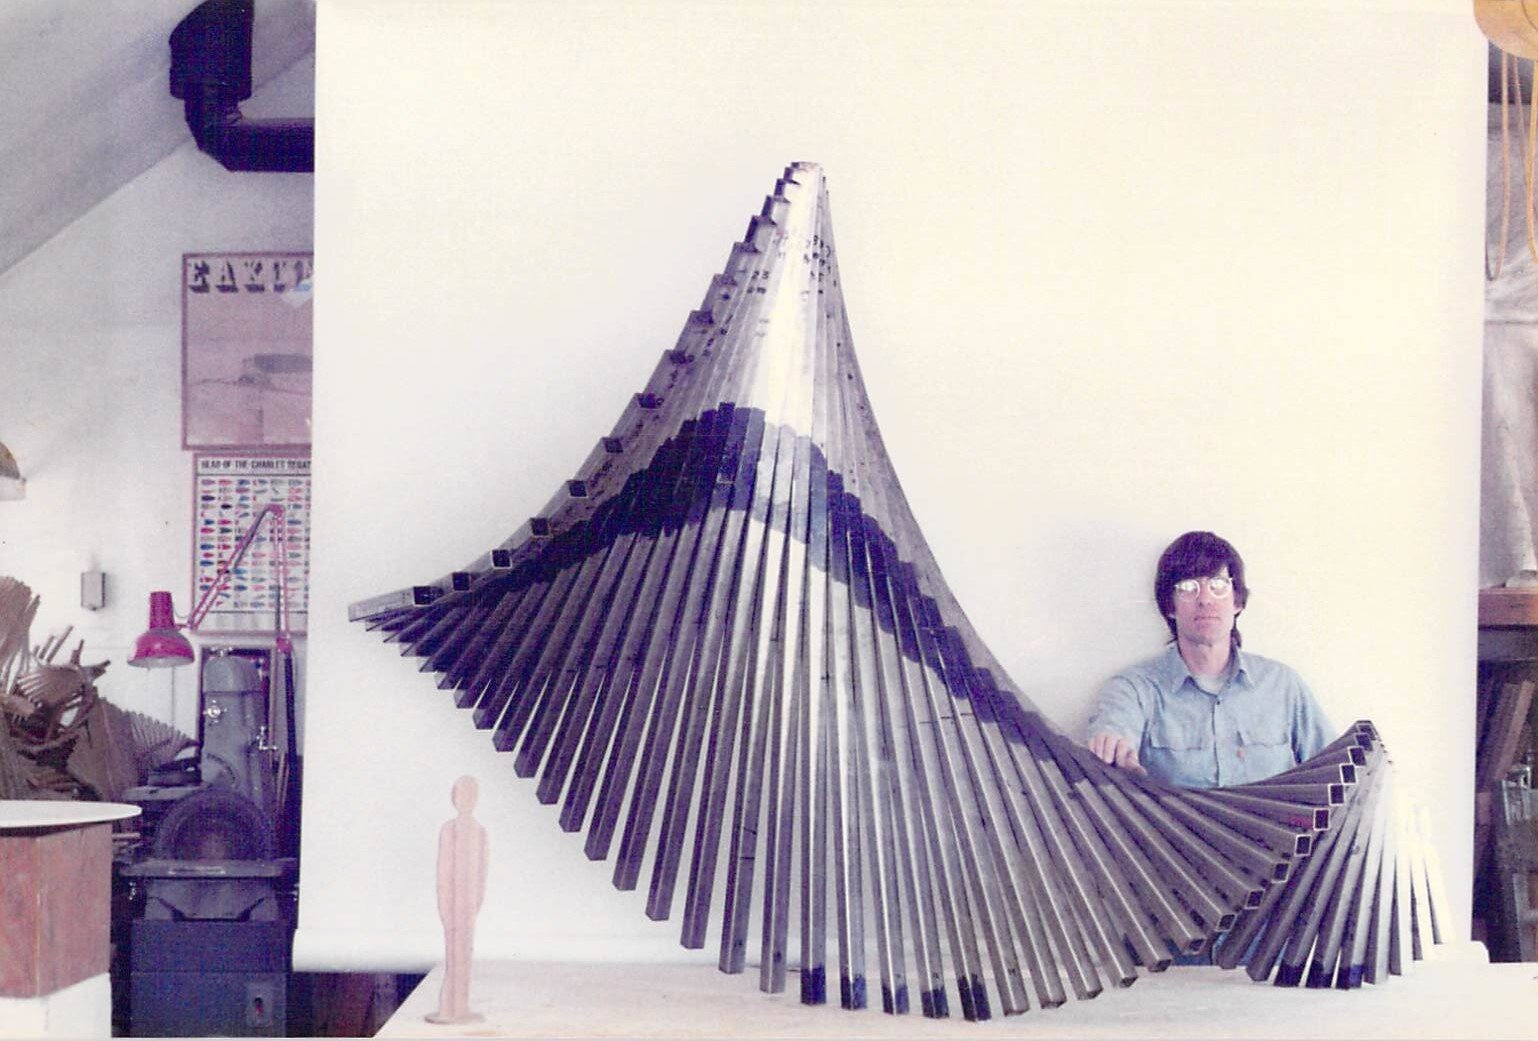 Artist with model of sculpture